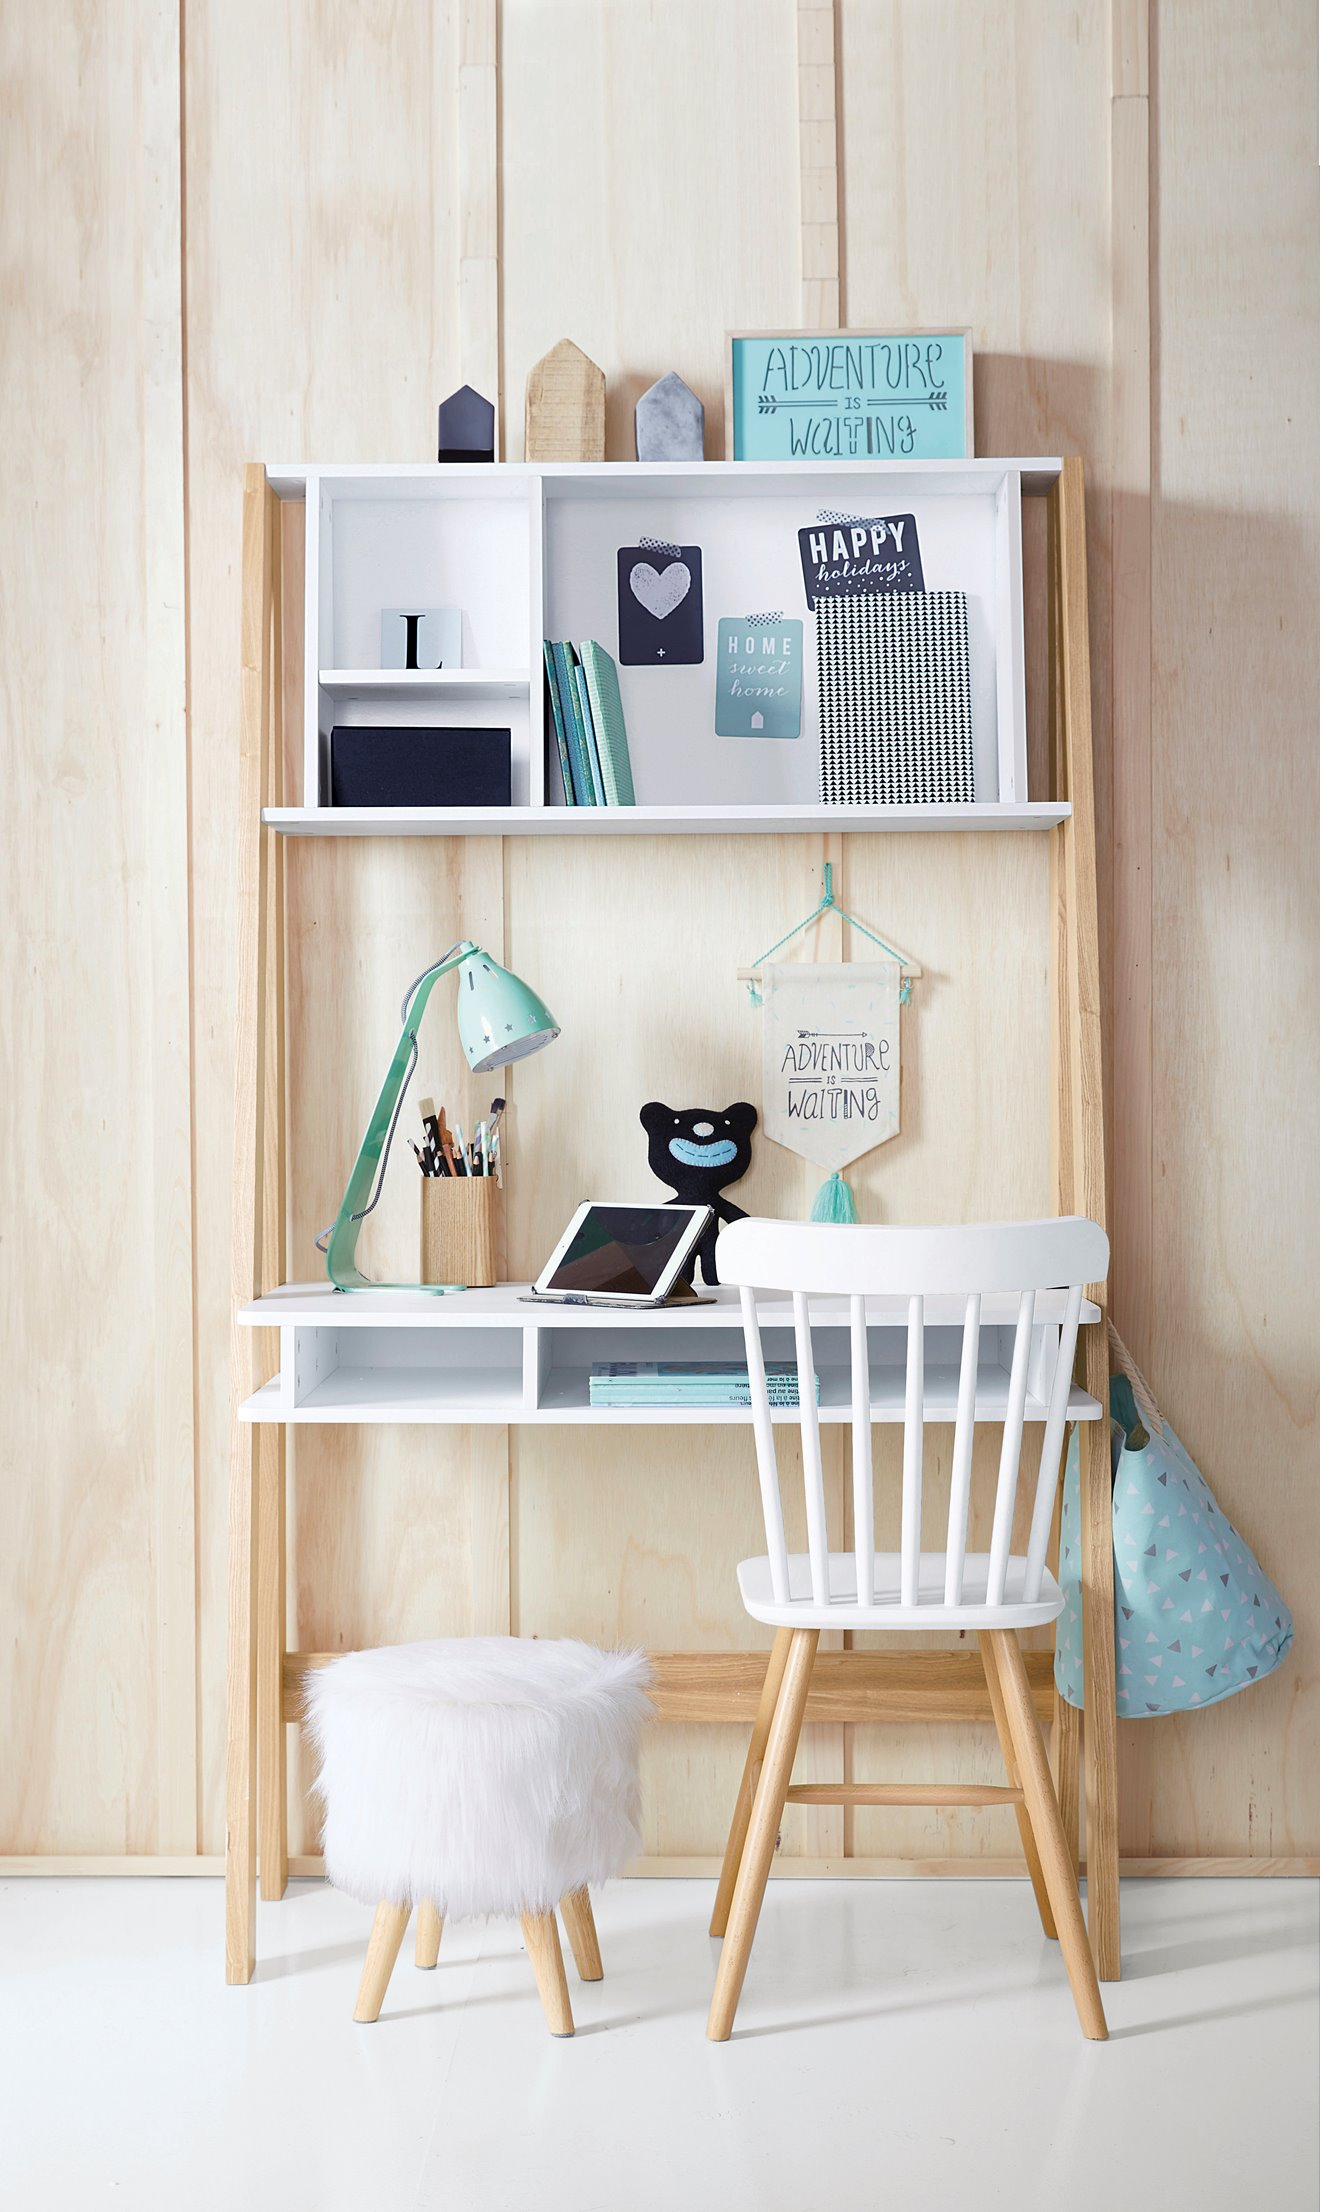 quel bureau choisir pour votre enfant cocon d co vie nomade. Black Bedroom Furniture Sets. Home Design Ideas